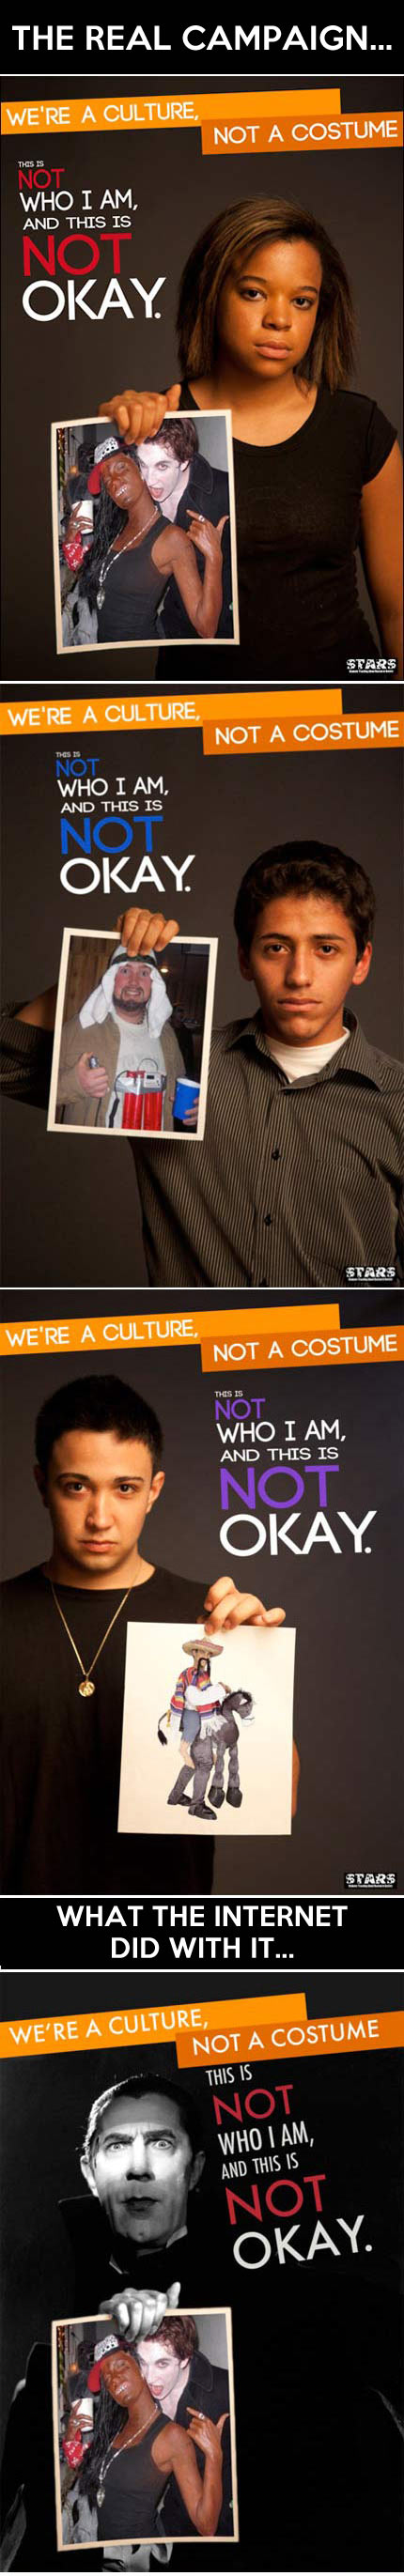 funny-Halloween-costume-culture-campaign-real